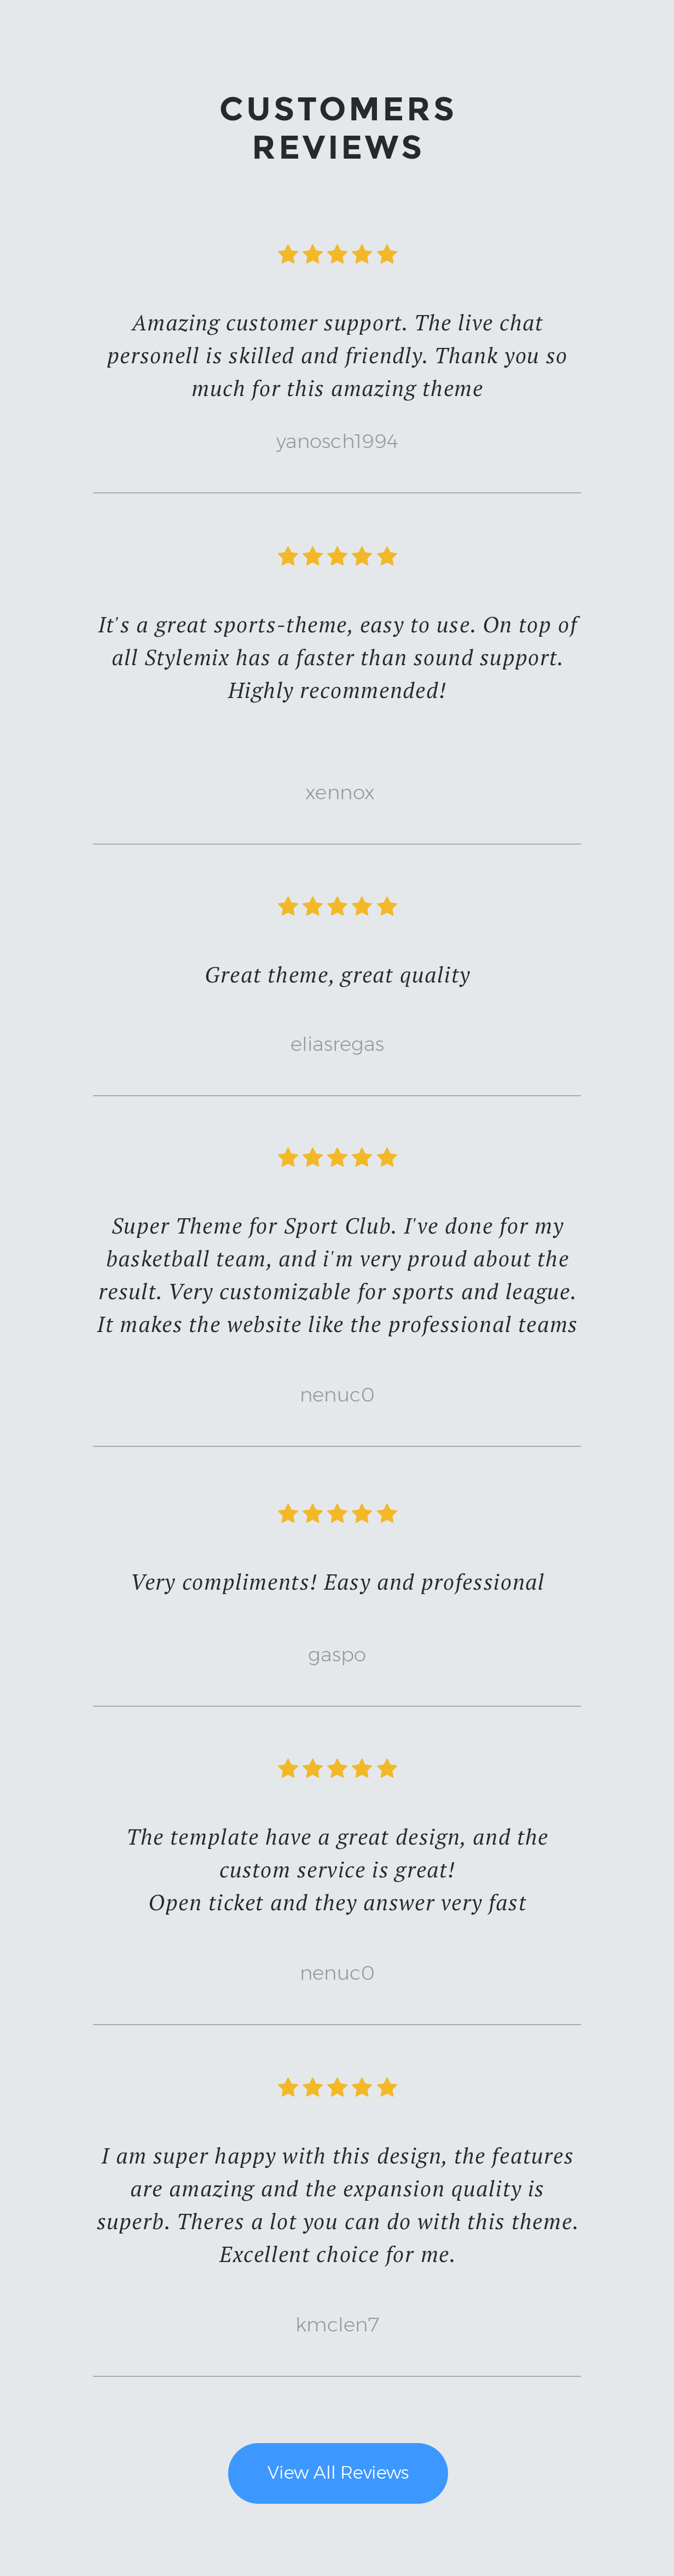 Splash Sport - WordPress Sports Theme for Basketball, Football, Soccer and Baseball Clubs - 1